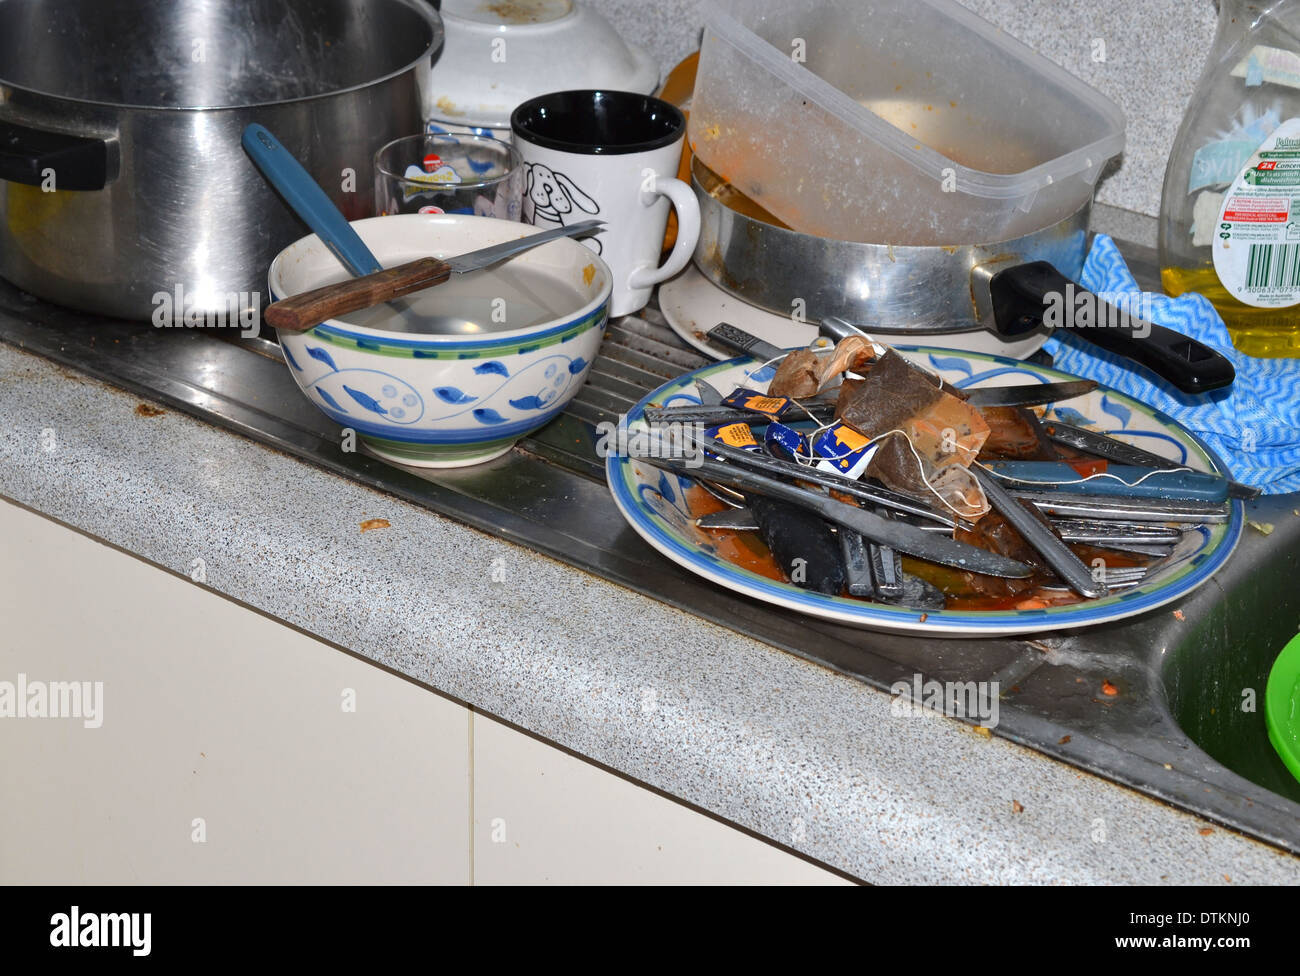 Dirty Dishes in / on the sink - Stock Image